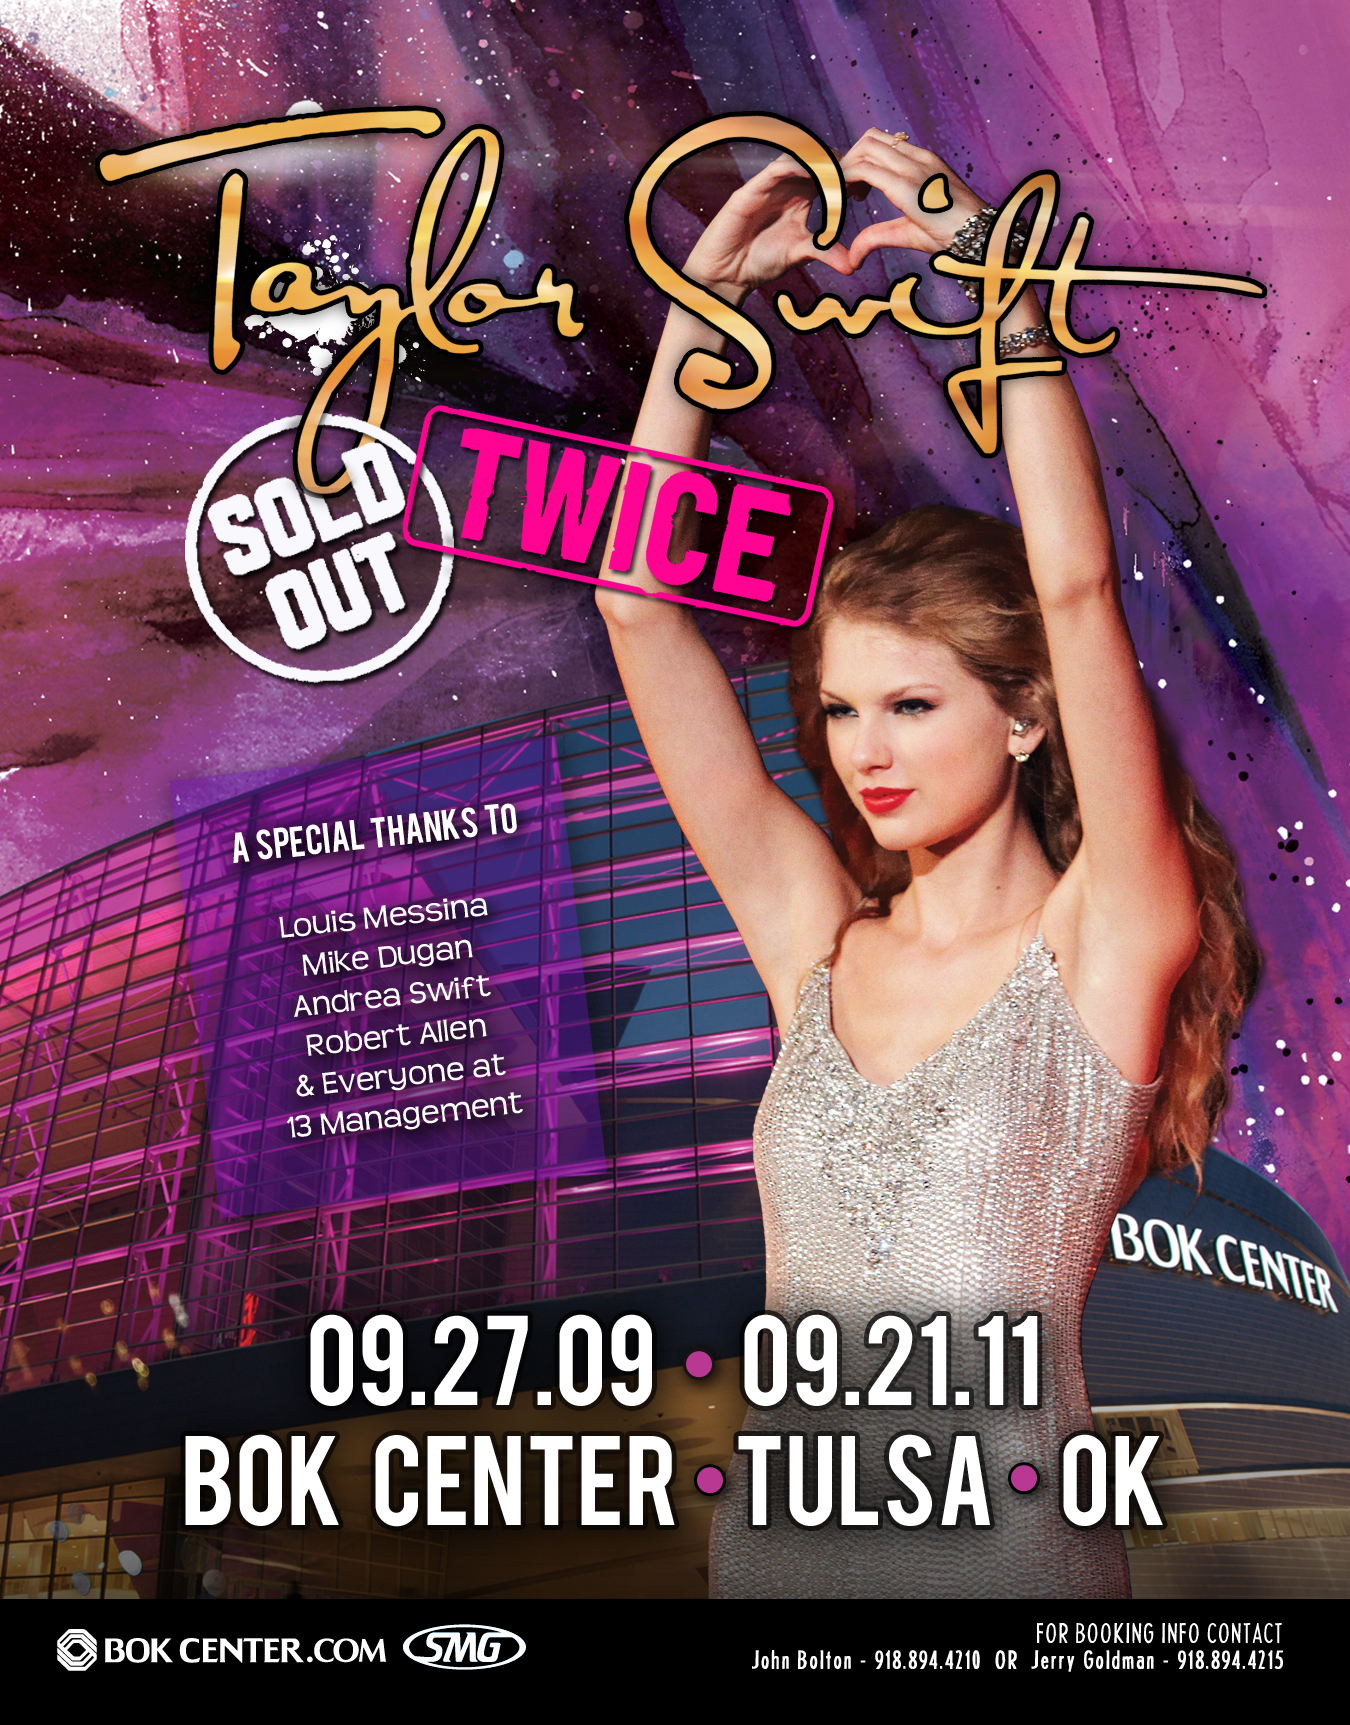 Taylor Swift Sold Out_Final.jpg